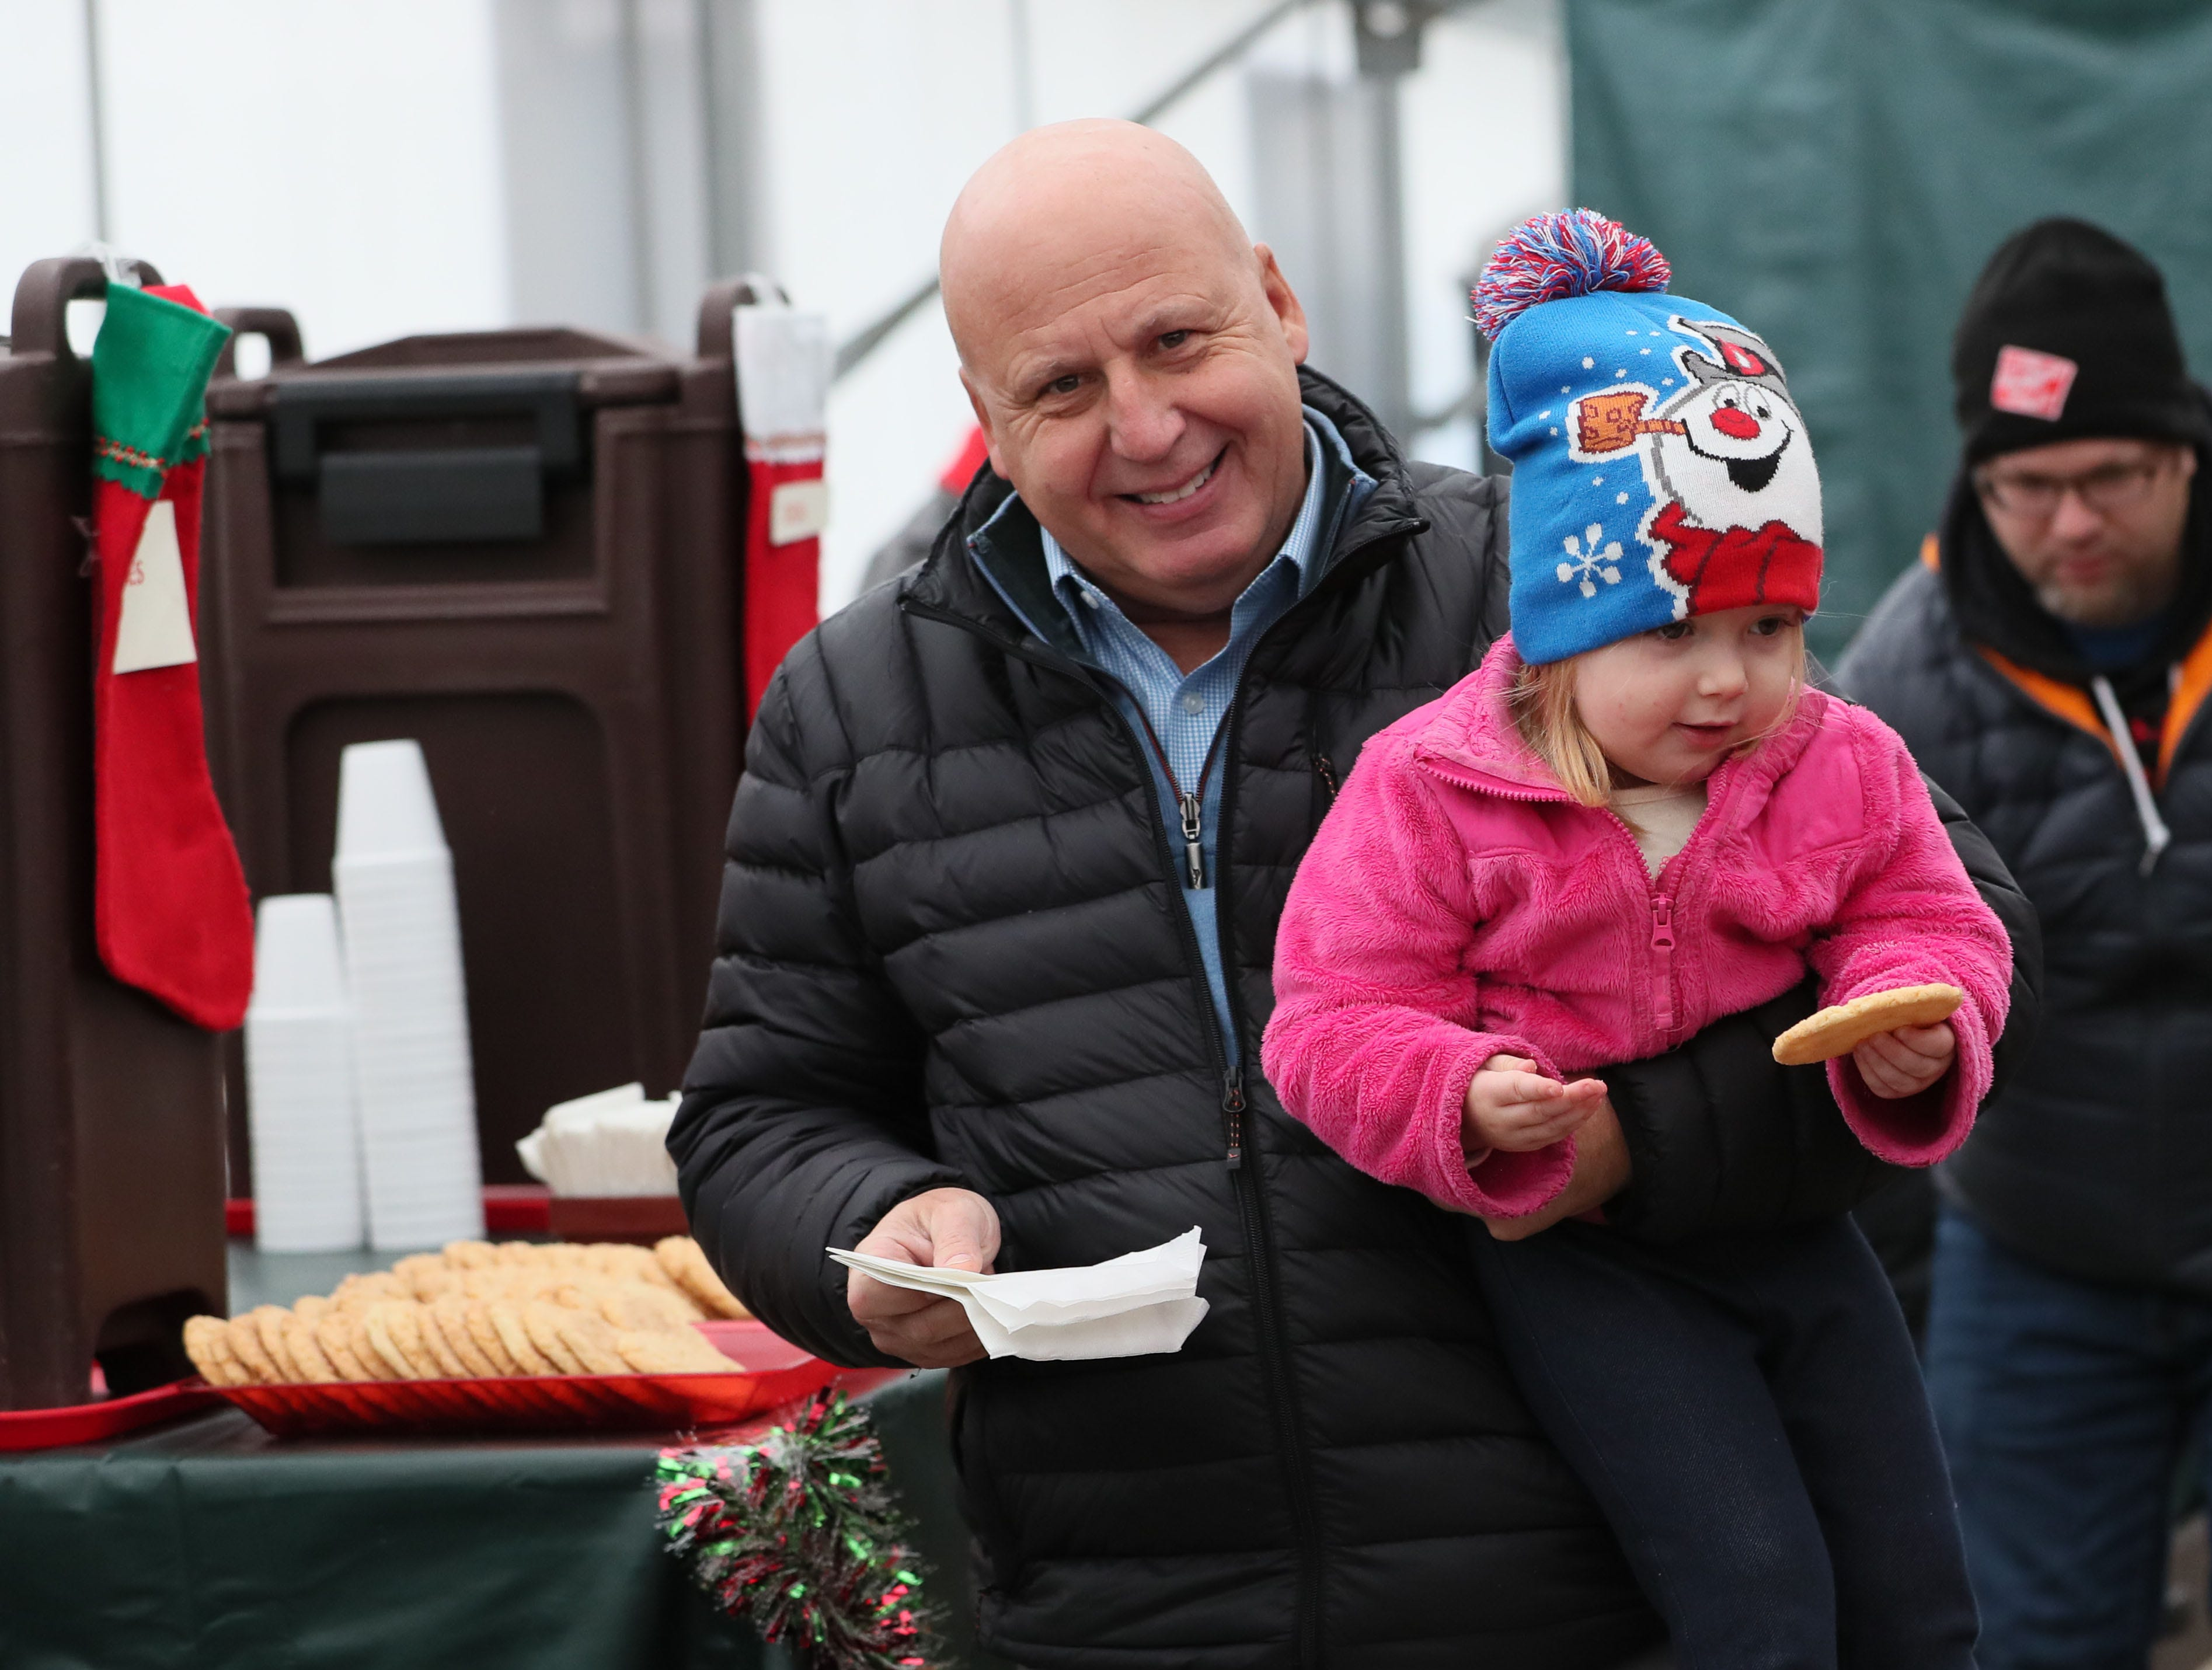 Tom Hoppe of Franklin carries his granddaughter Lucy Meerkins, 2, of Franklin after getting a cookie at The Elegant Farmer.